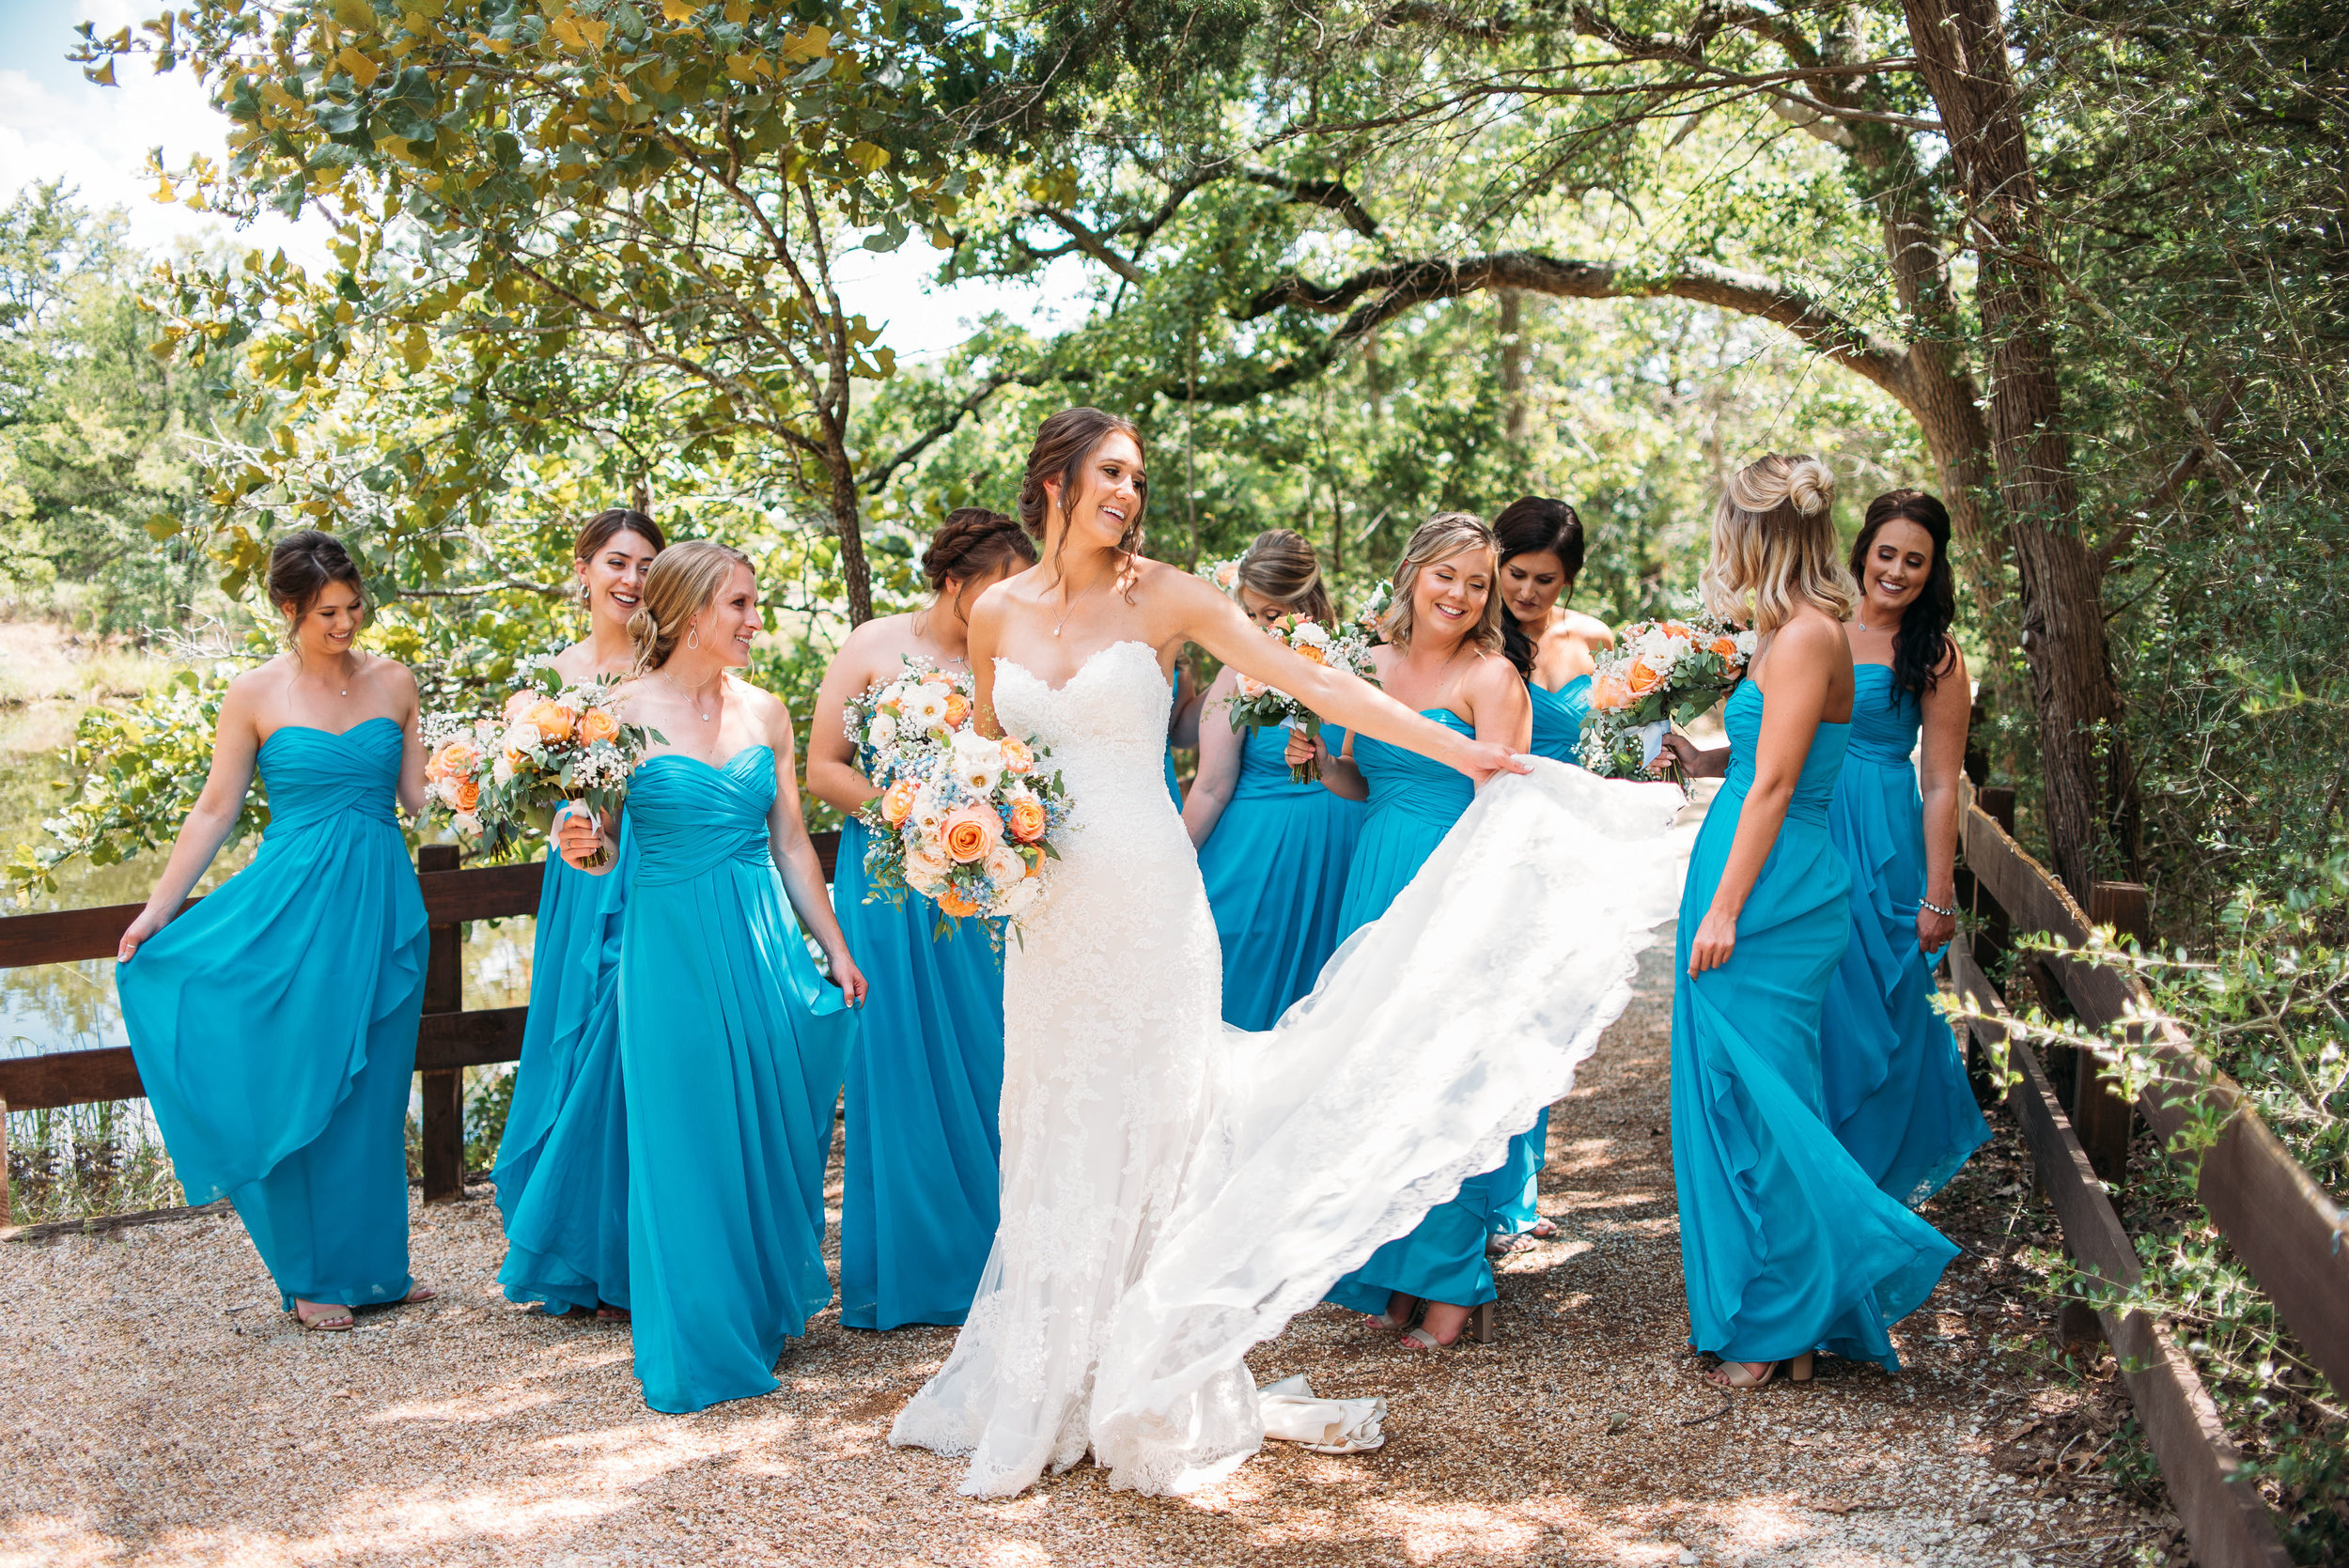 Cameron-Price-Peach-Creek-Ranch-Wedding-Ceremony-Bridals-Engagement-College-Station-Photographer-Videographer-San-Angel-Photo-00-0038.jpg